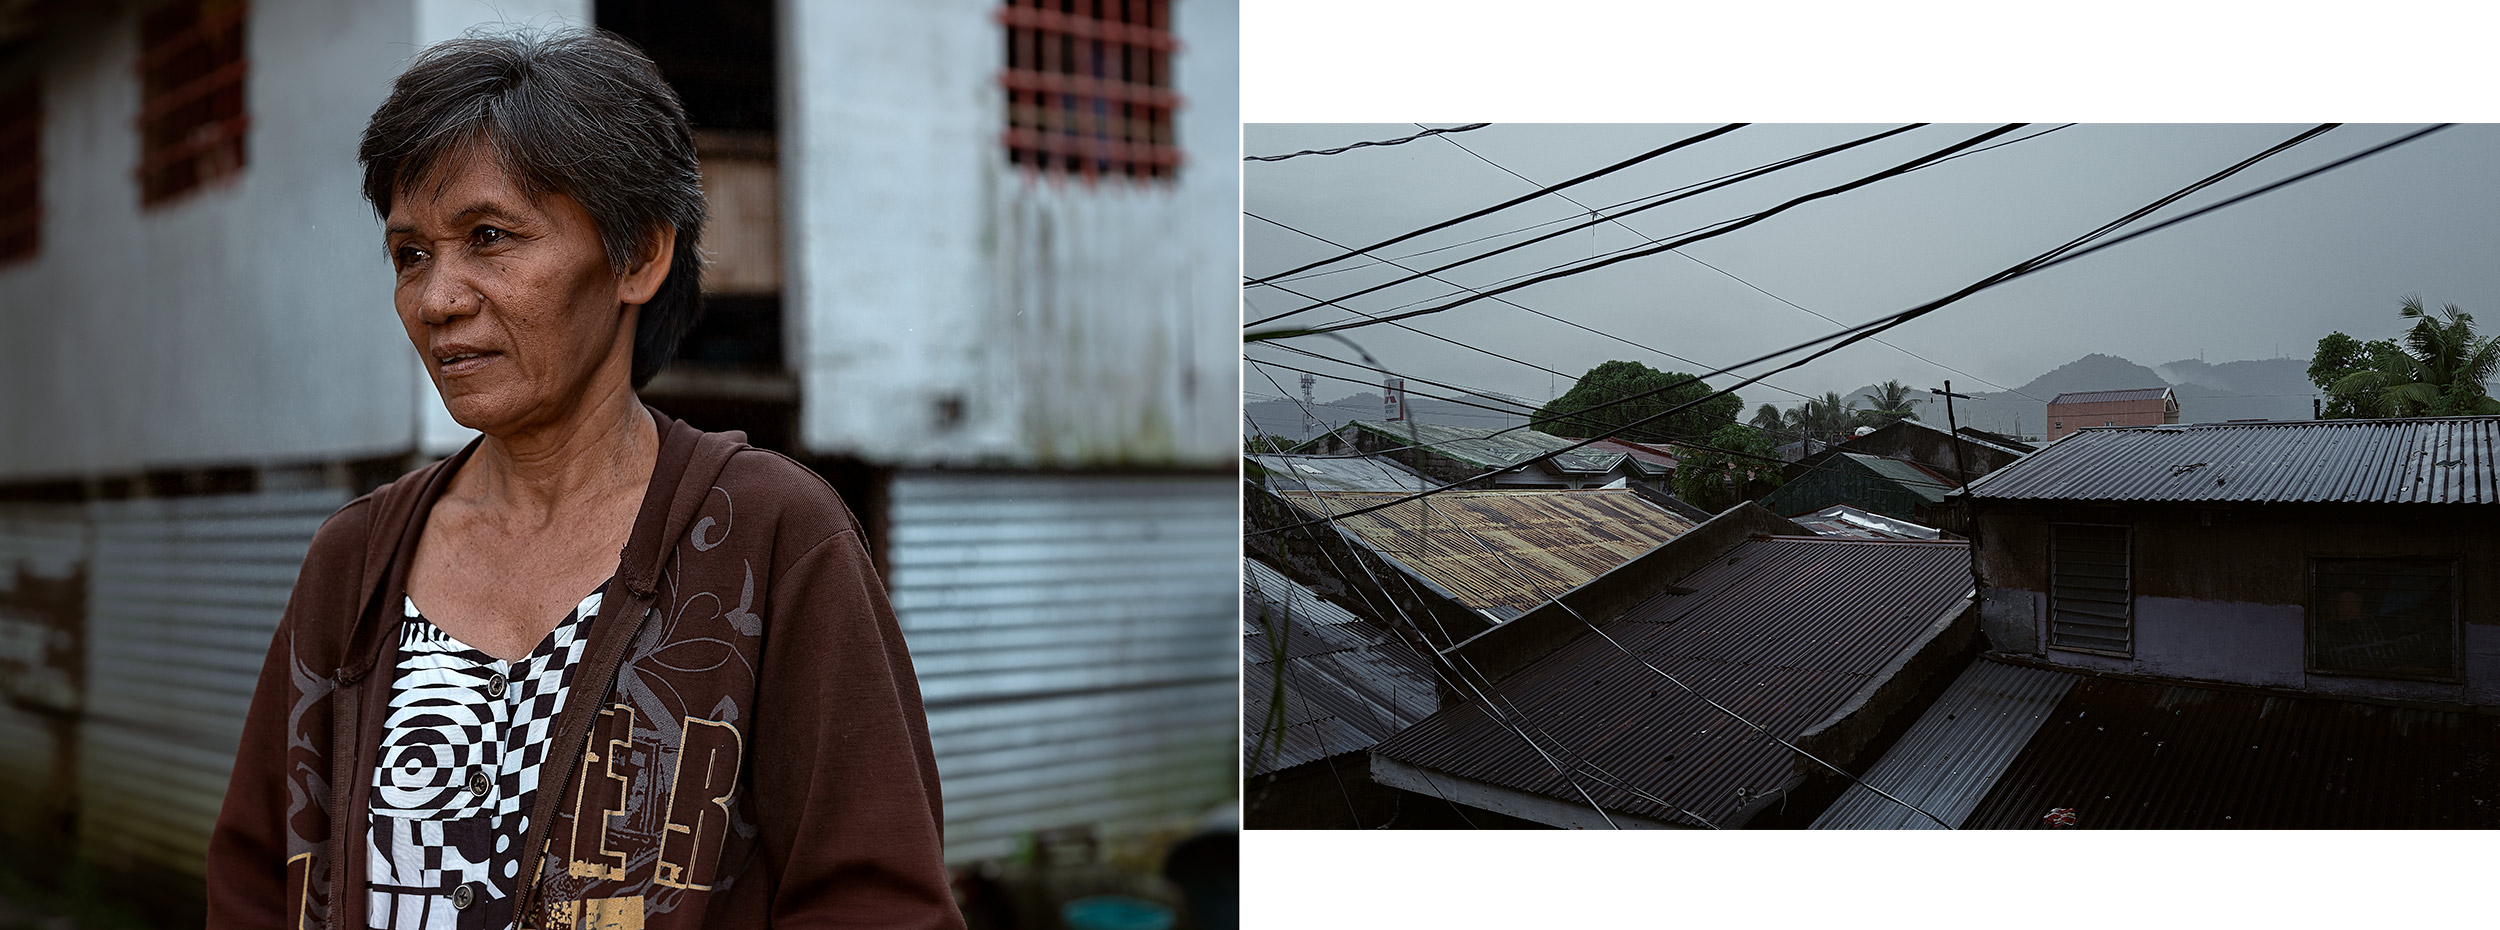 Good Boy Wolf Photographer, Philippines, woman in poverty wearing brown jumper